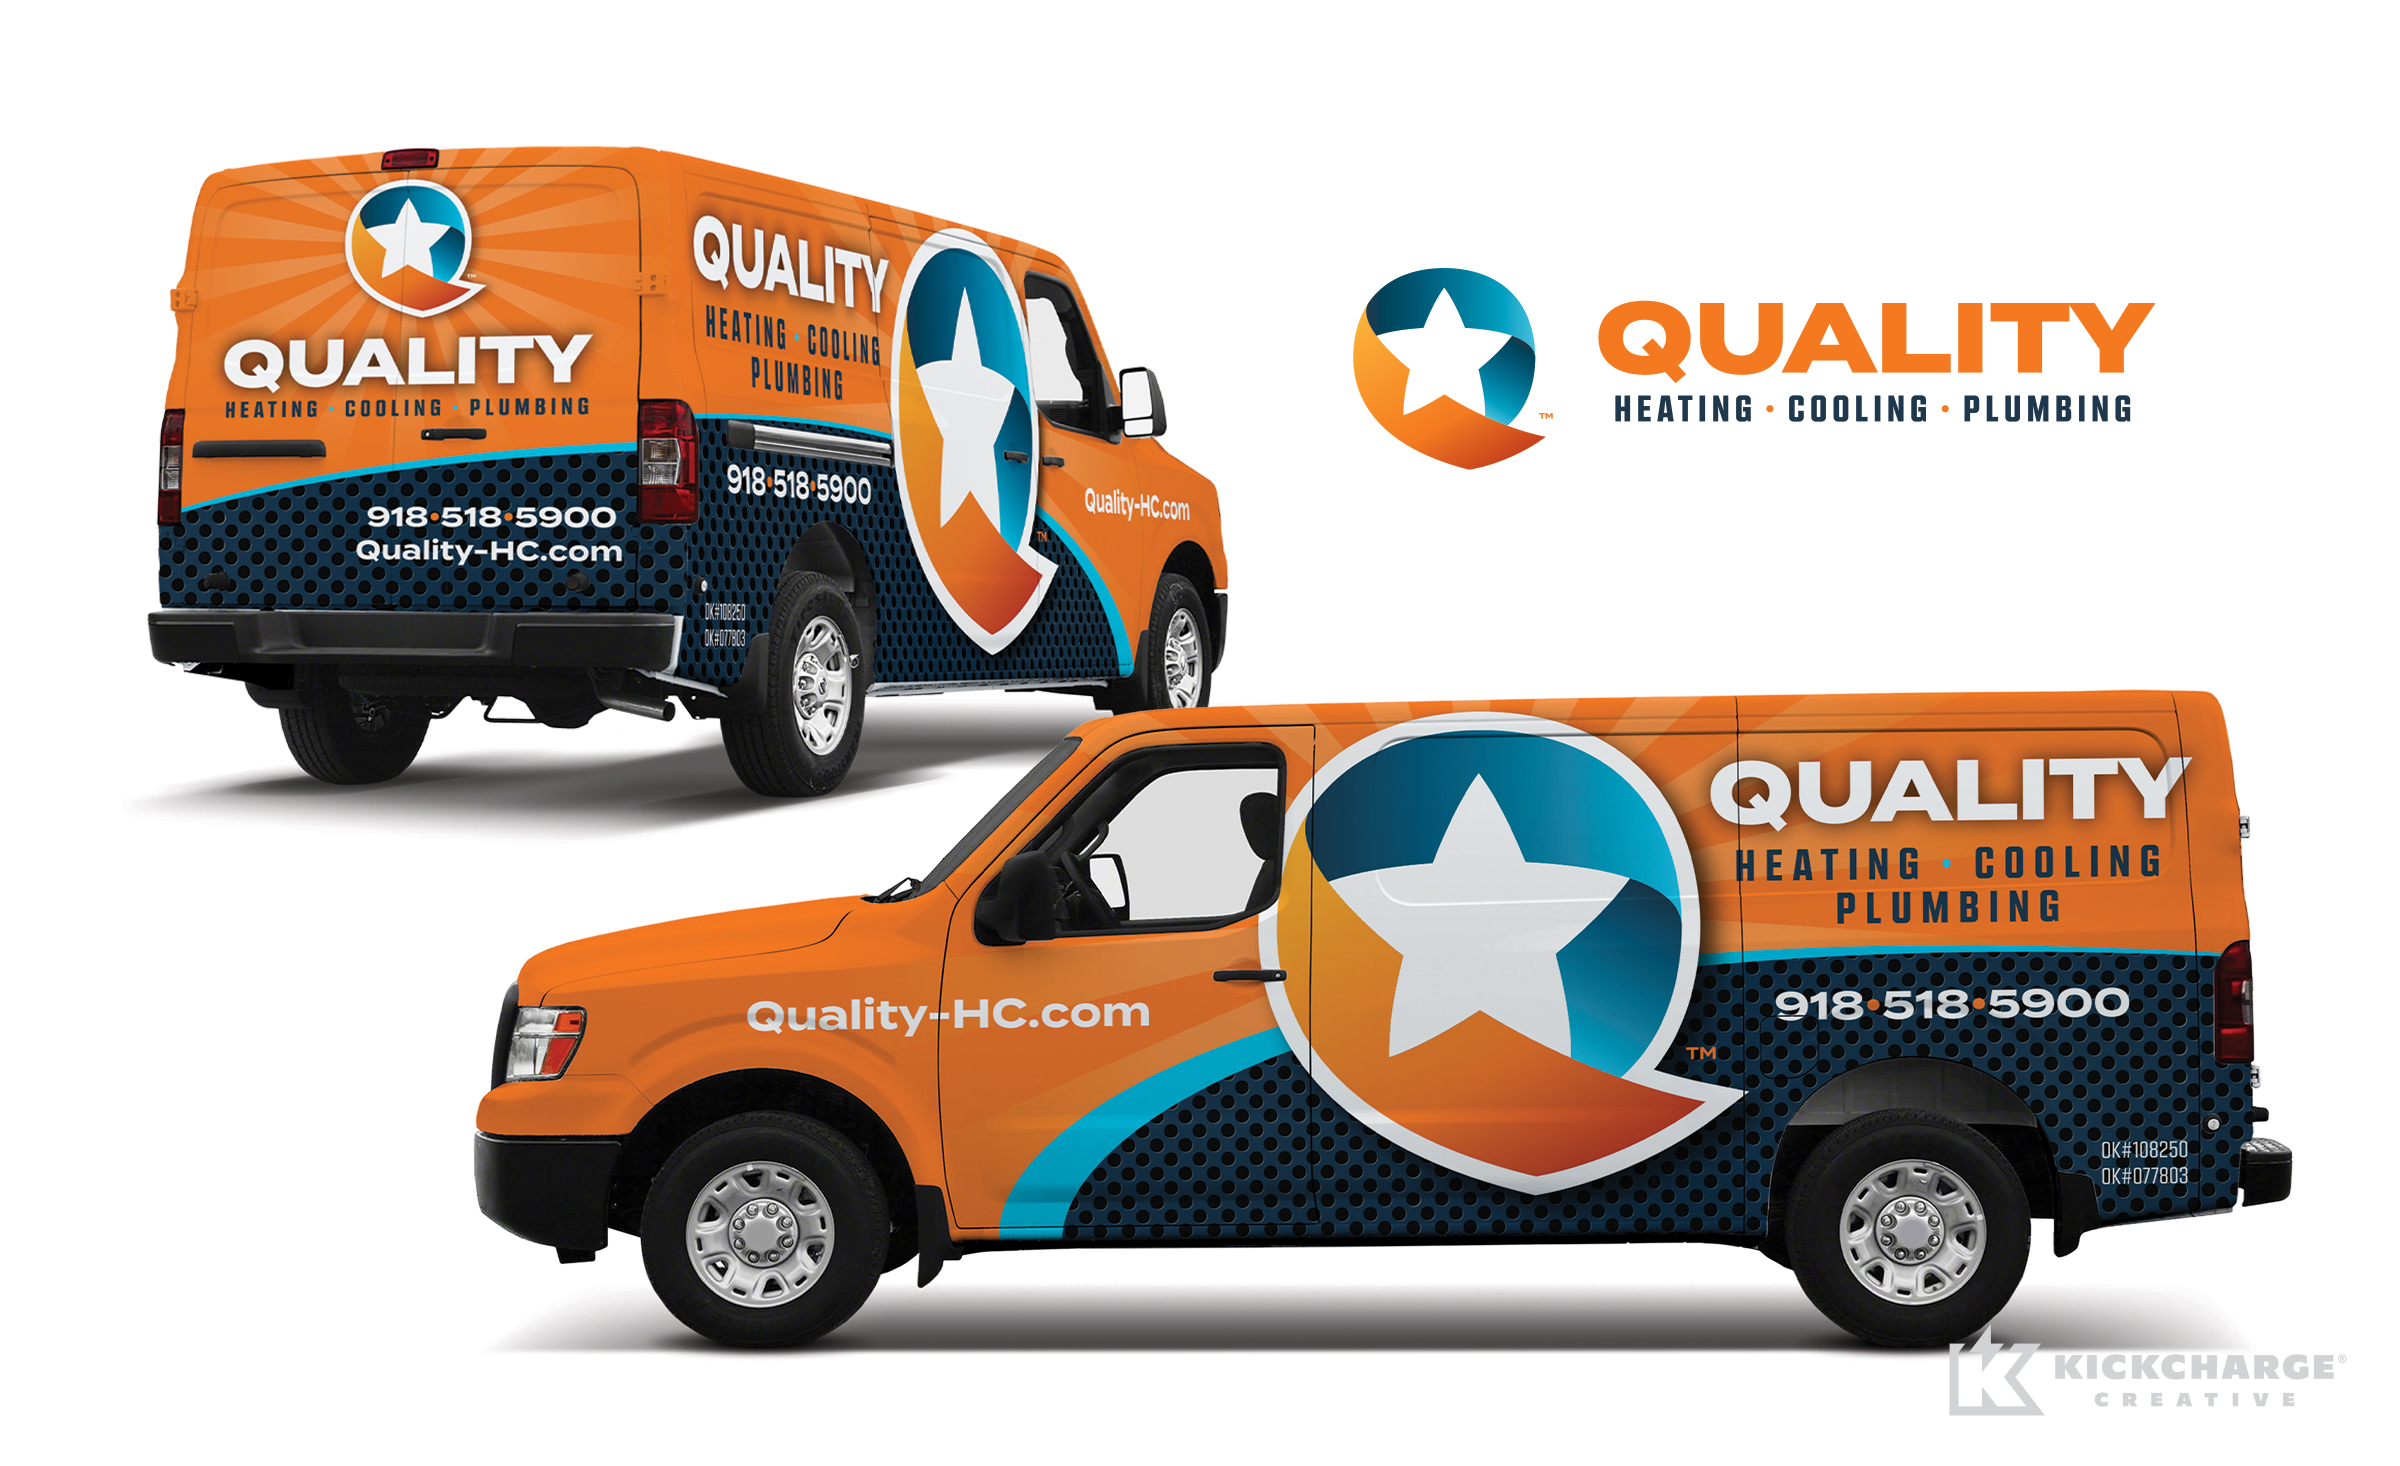 hvac and plumbing truck wrap for Quality Heating, Cooling & Plumbing